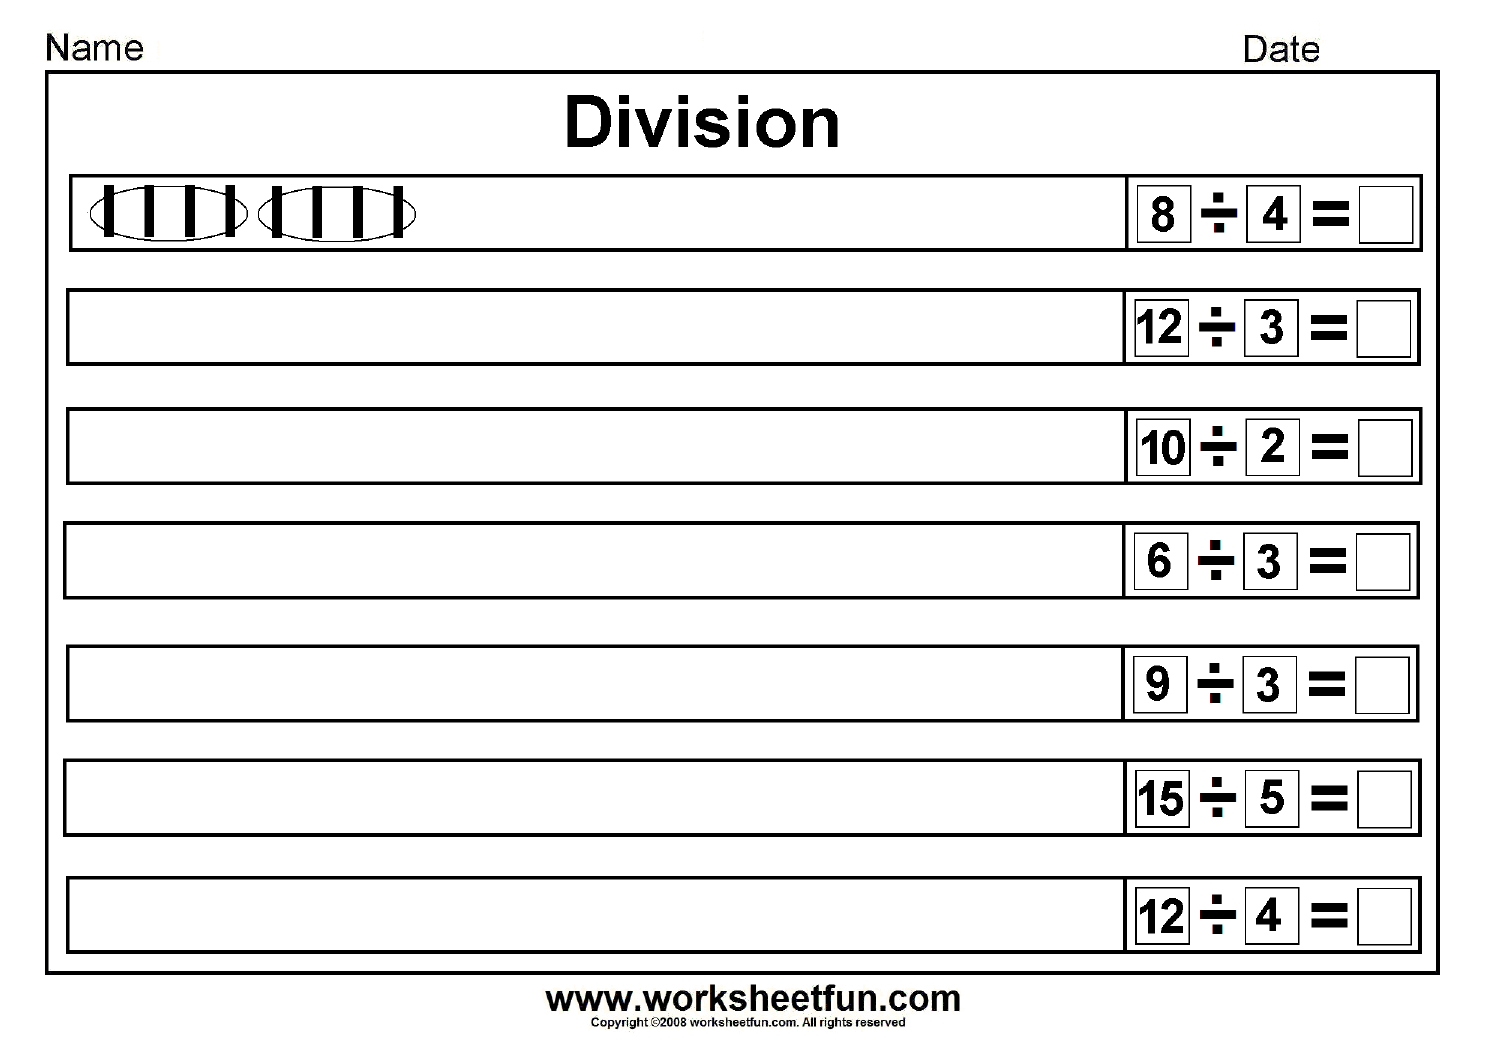 Division With Images